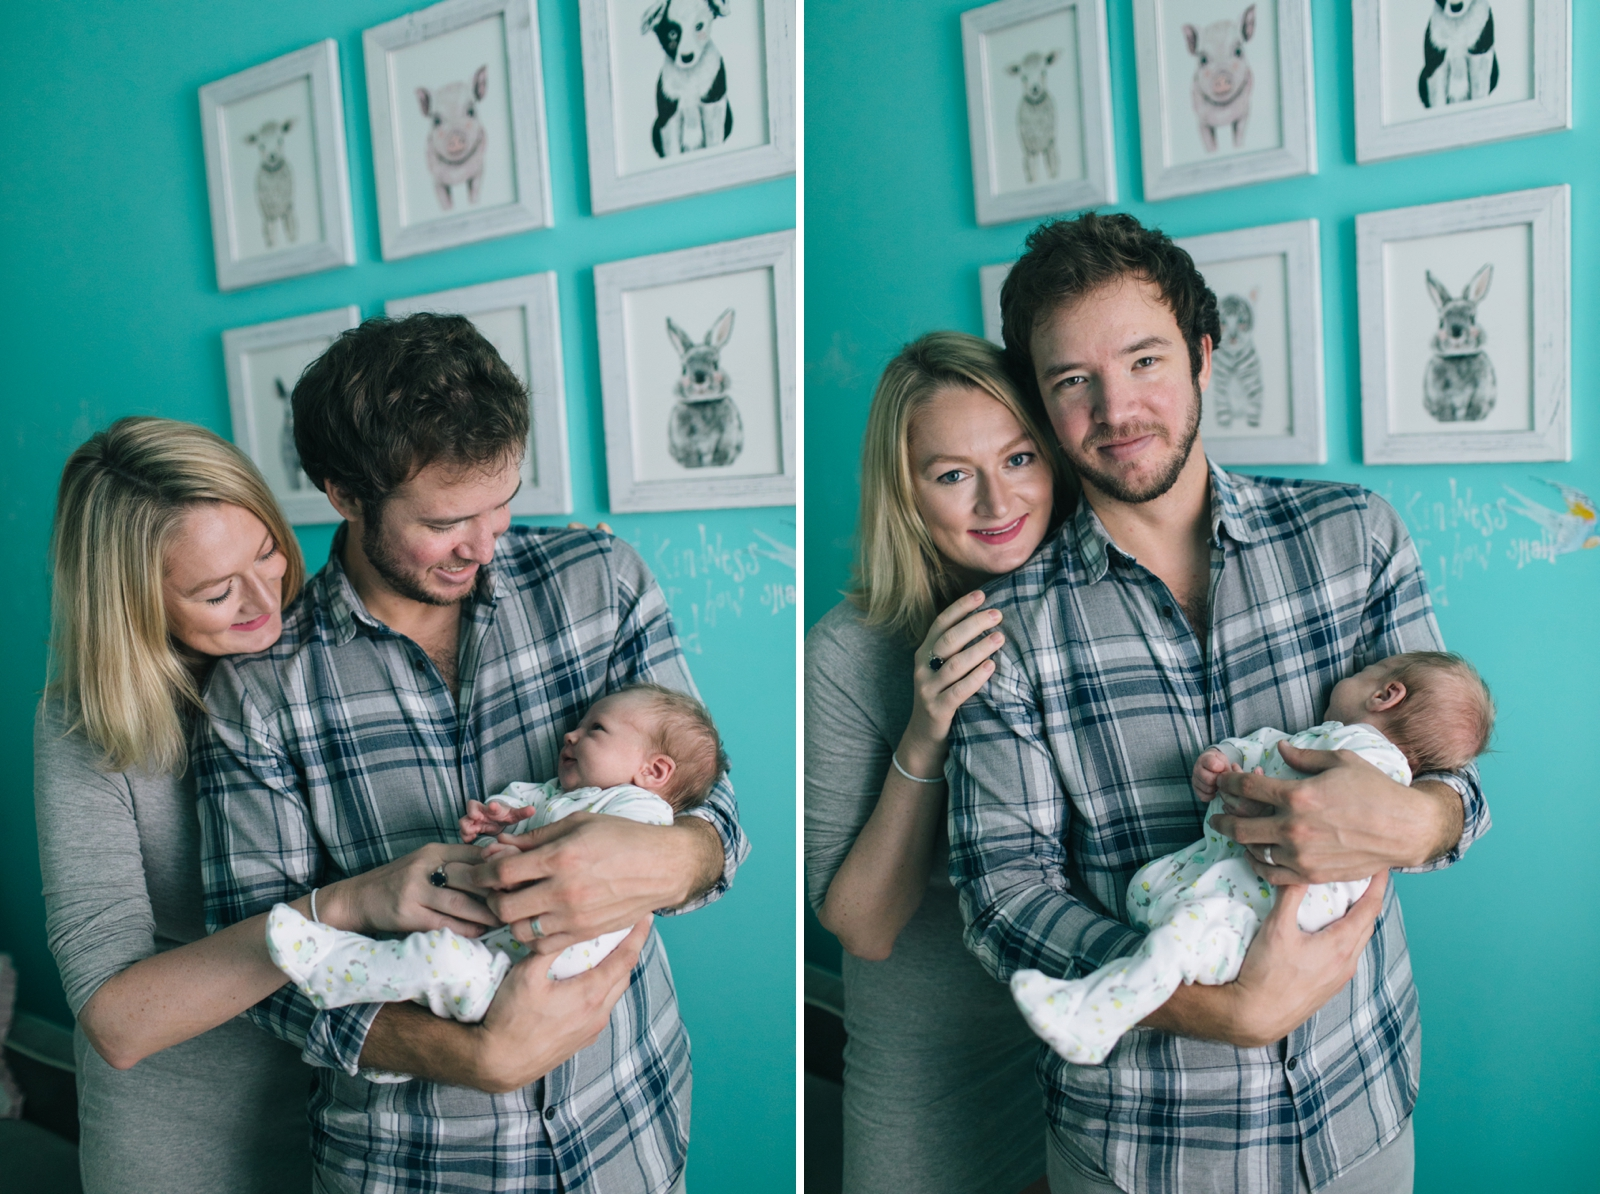 Casual fun family portraits with parents holding newborn in nursery at their home